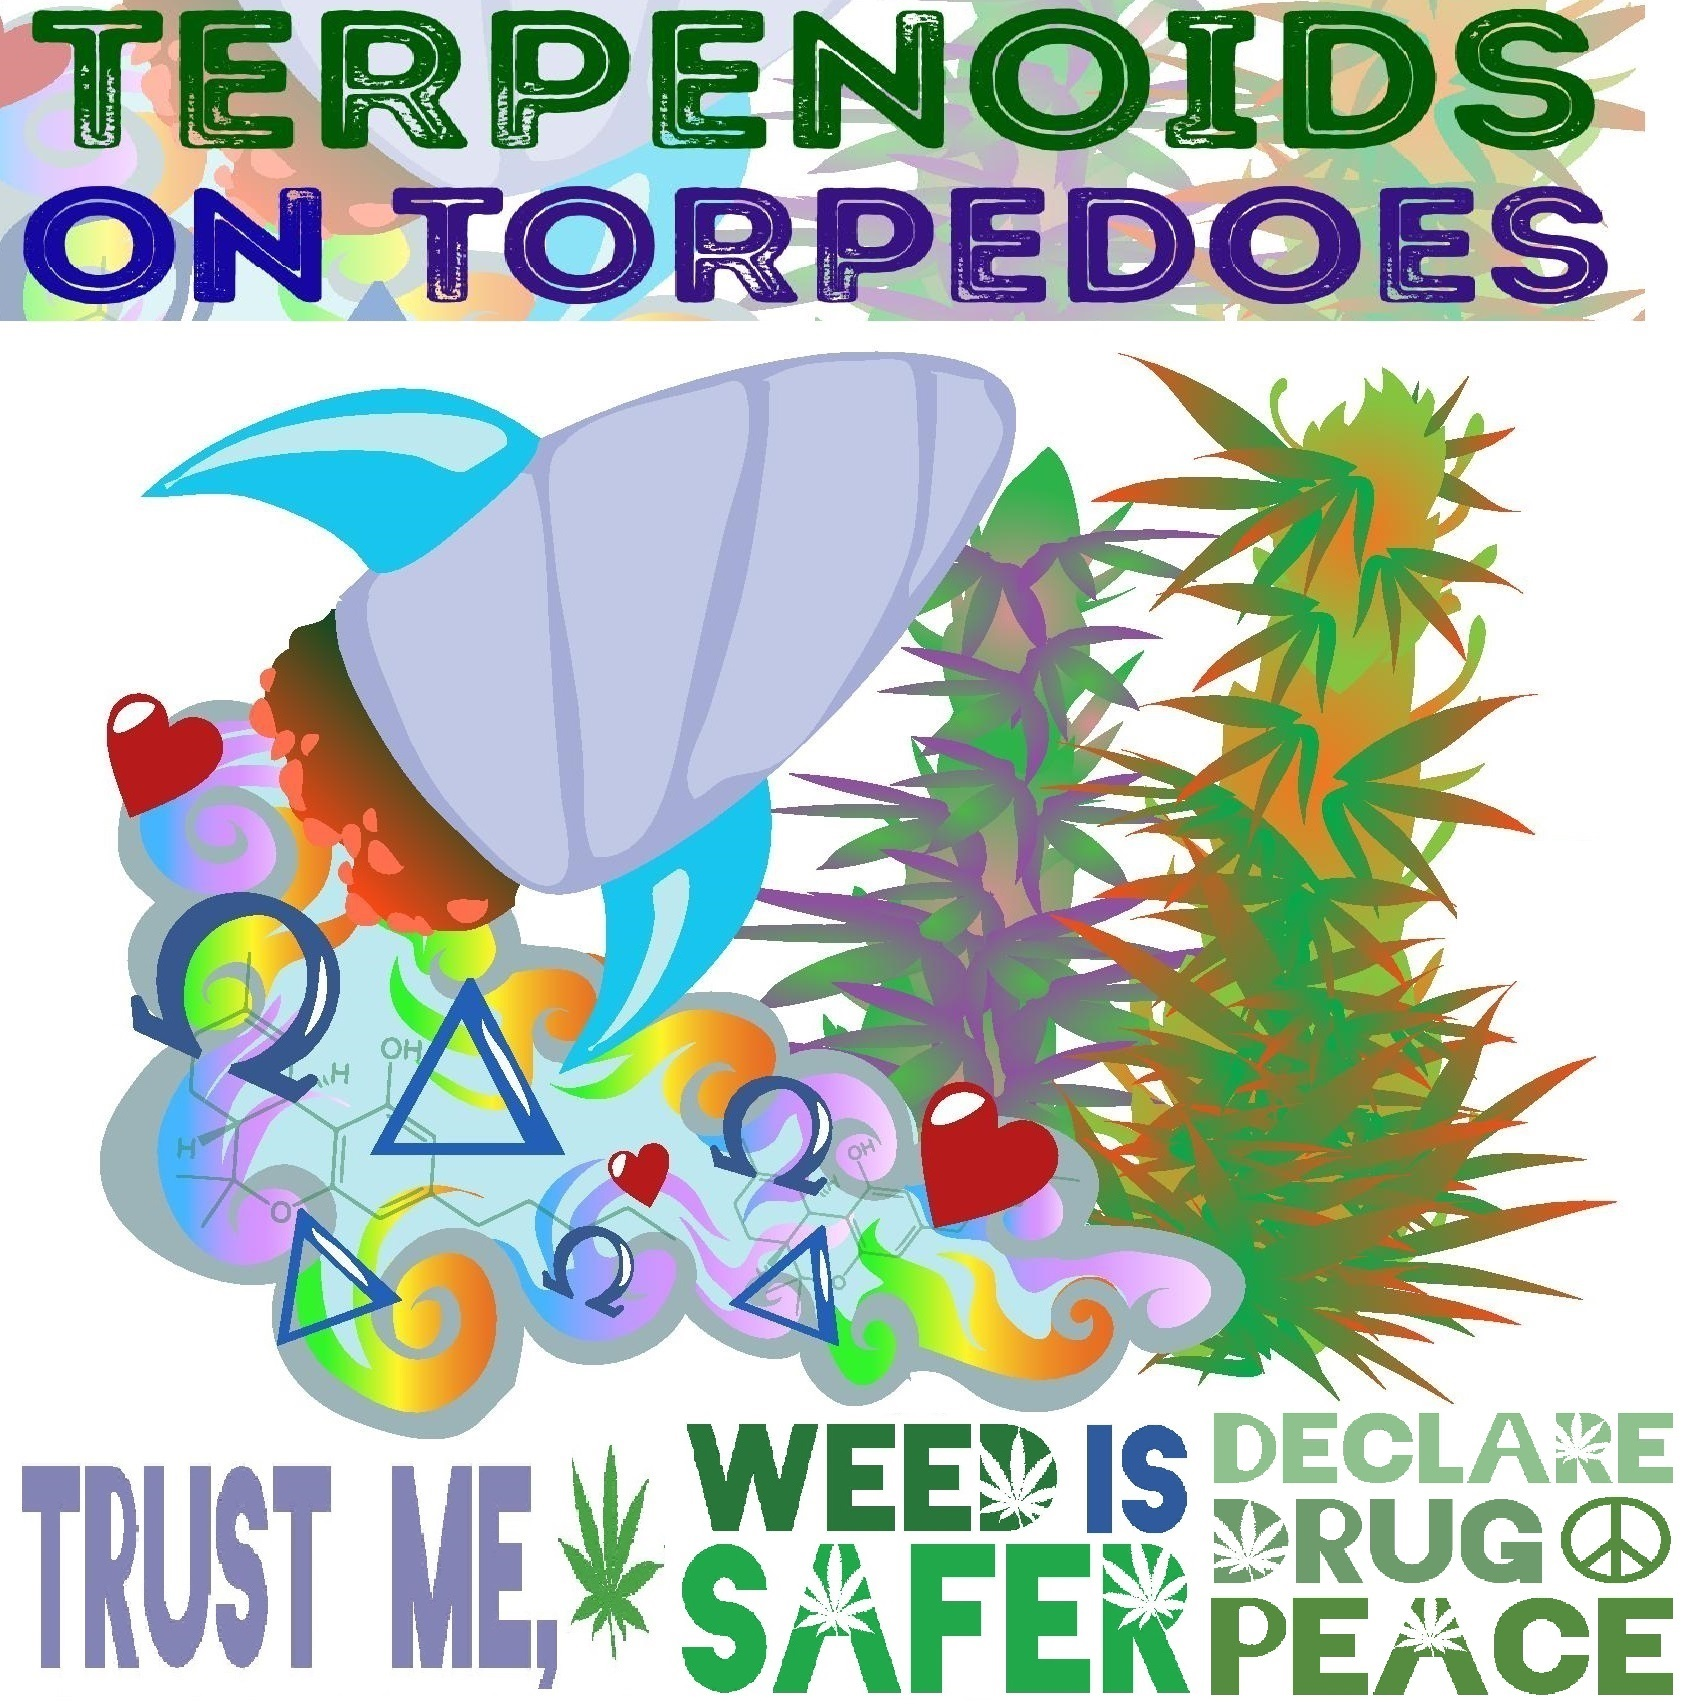 pro-Terpene cures in MMJ Safer fight